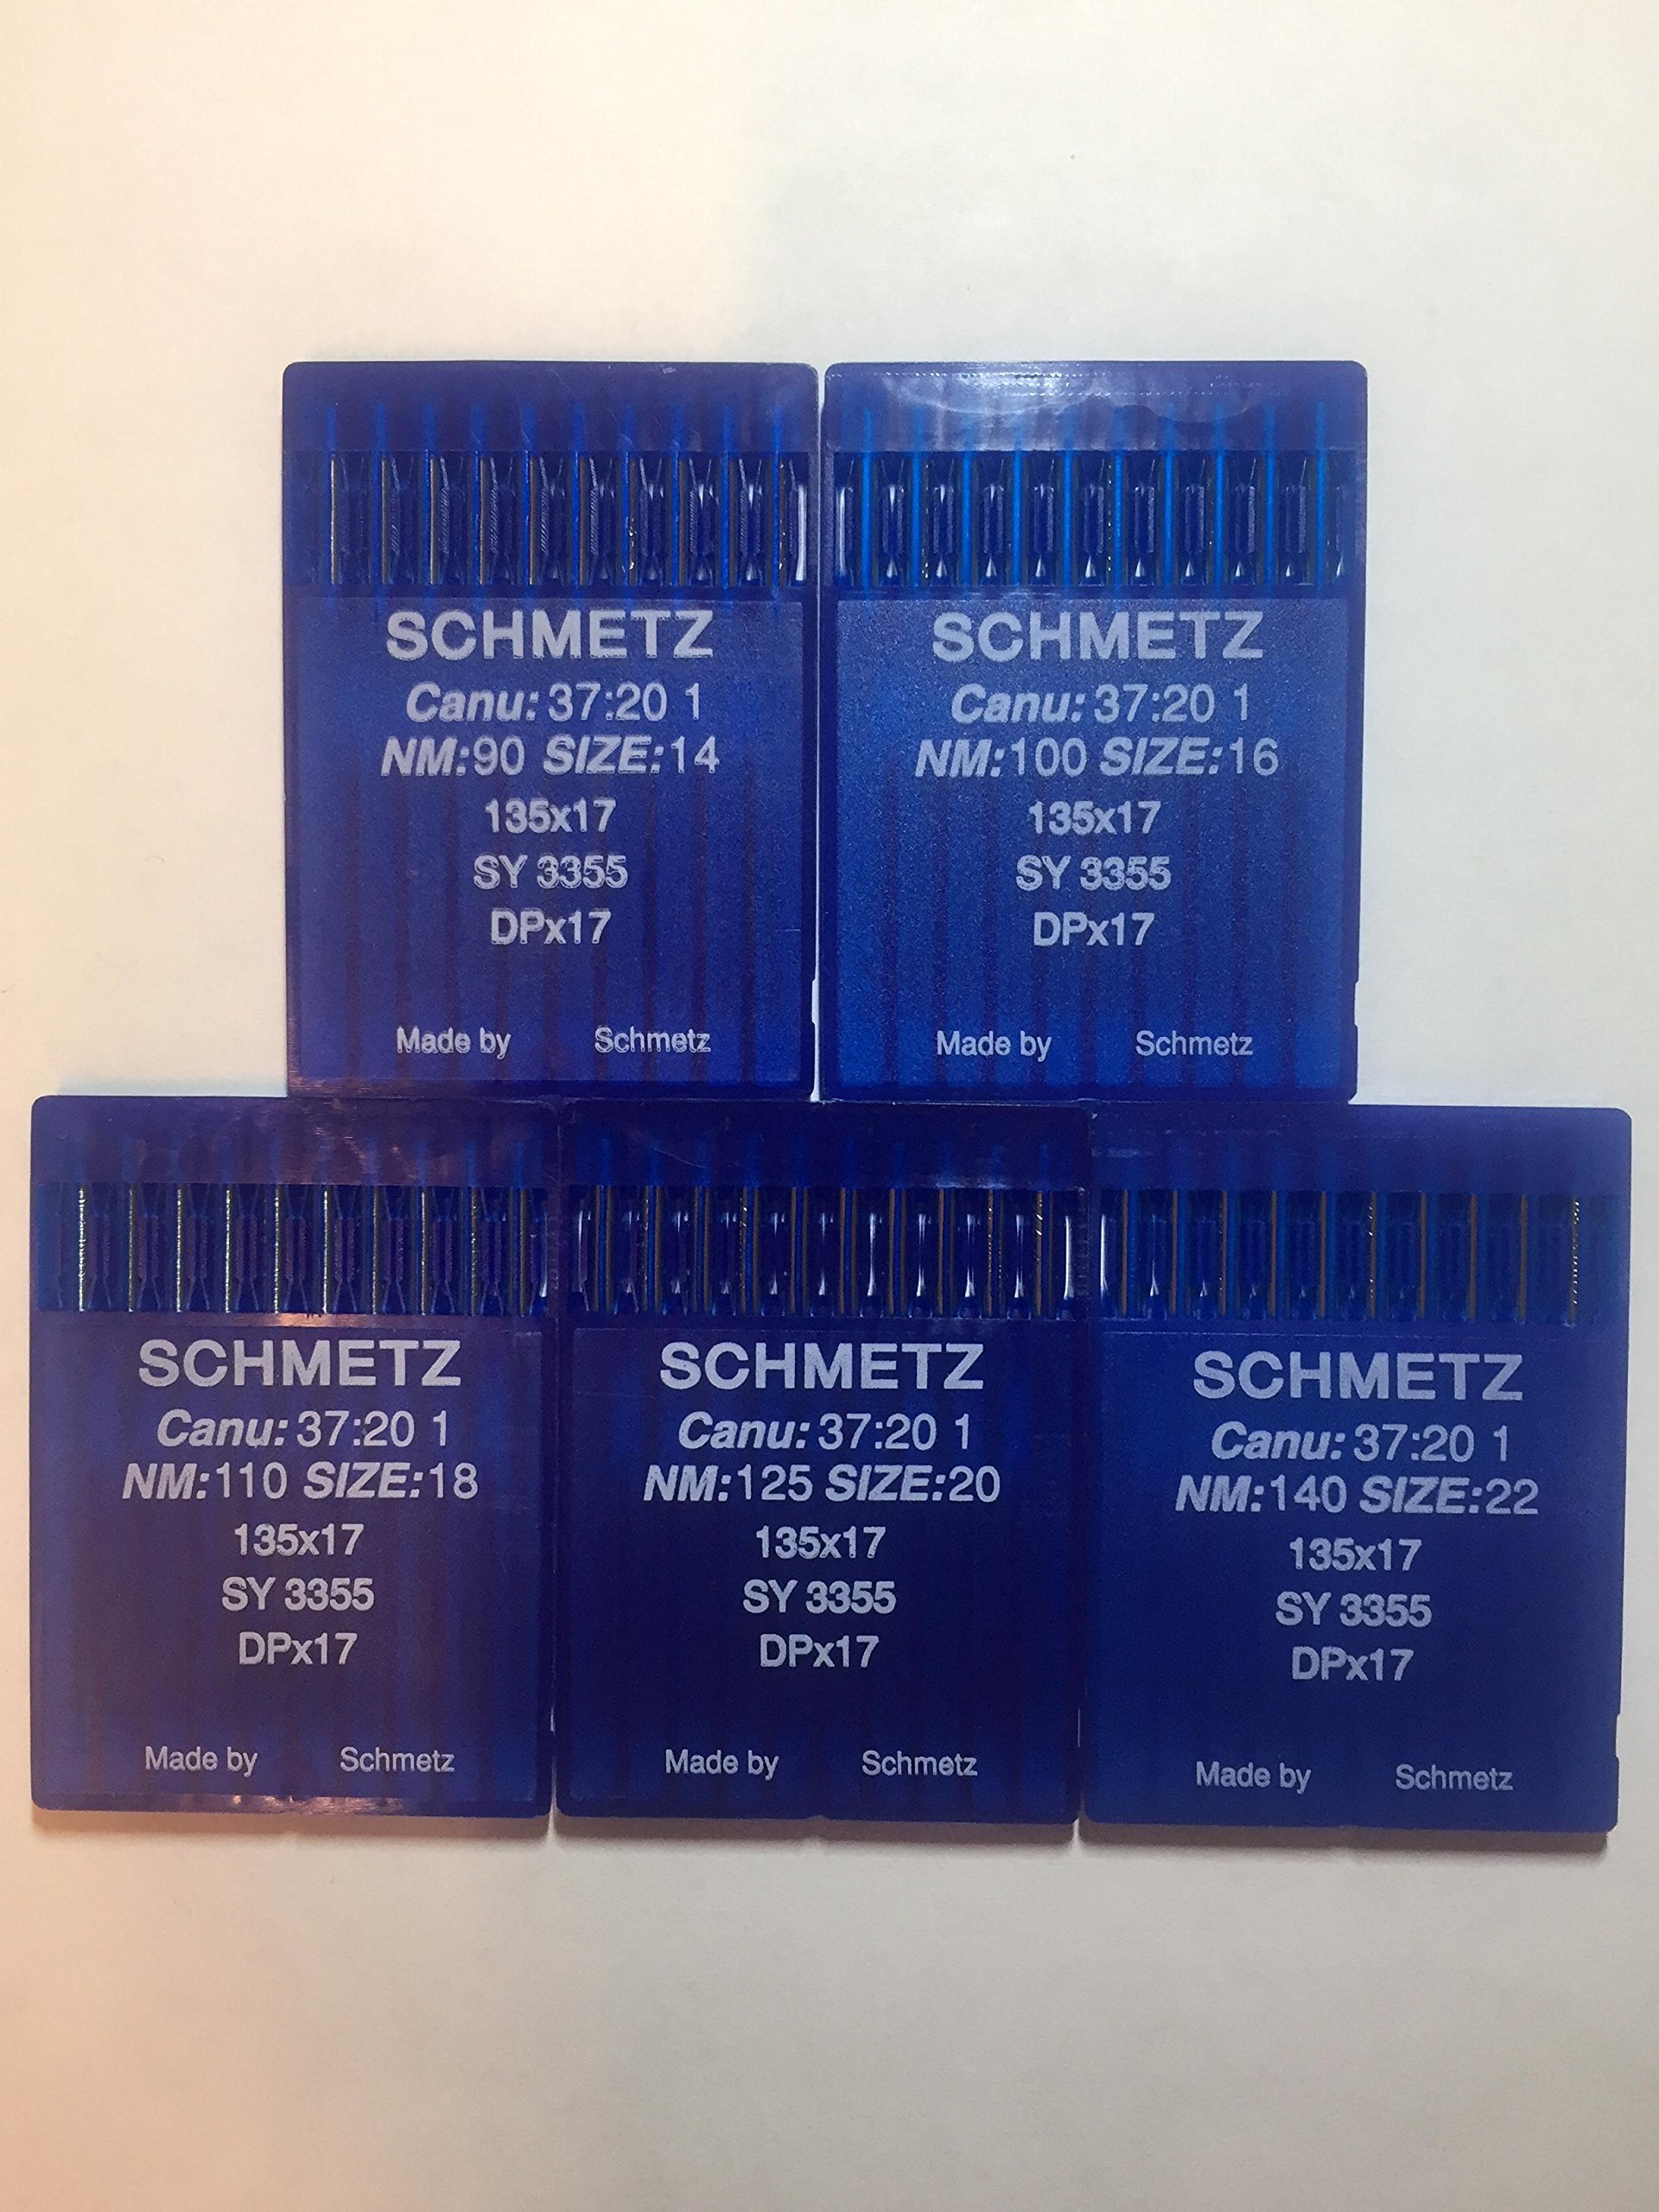 SCHMETZ 50pcs Size 14 16 18 20 22 135x17 DPx17 Walking Foot Sewing Machine Needle by Schmetz